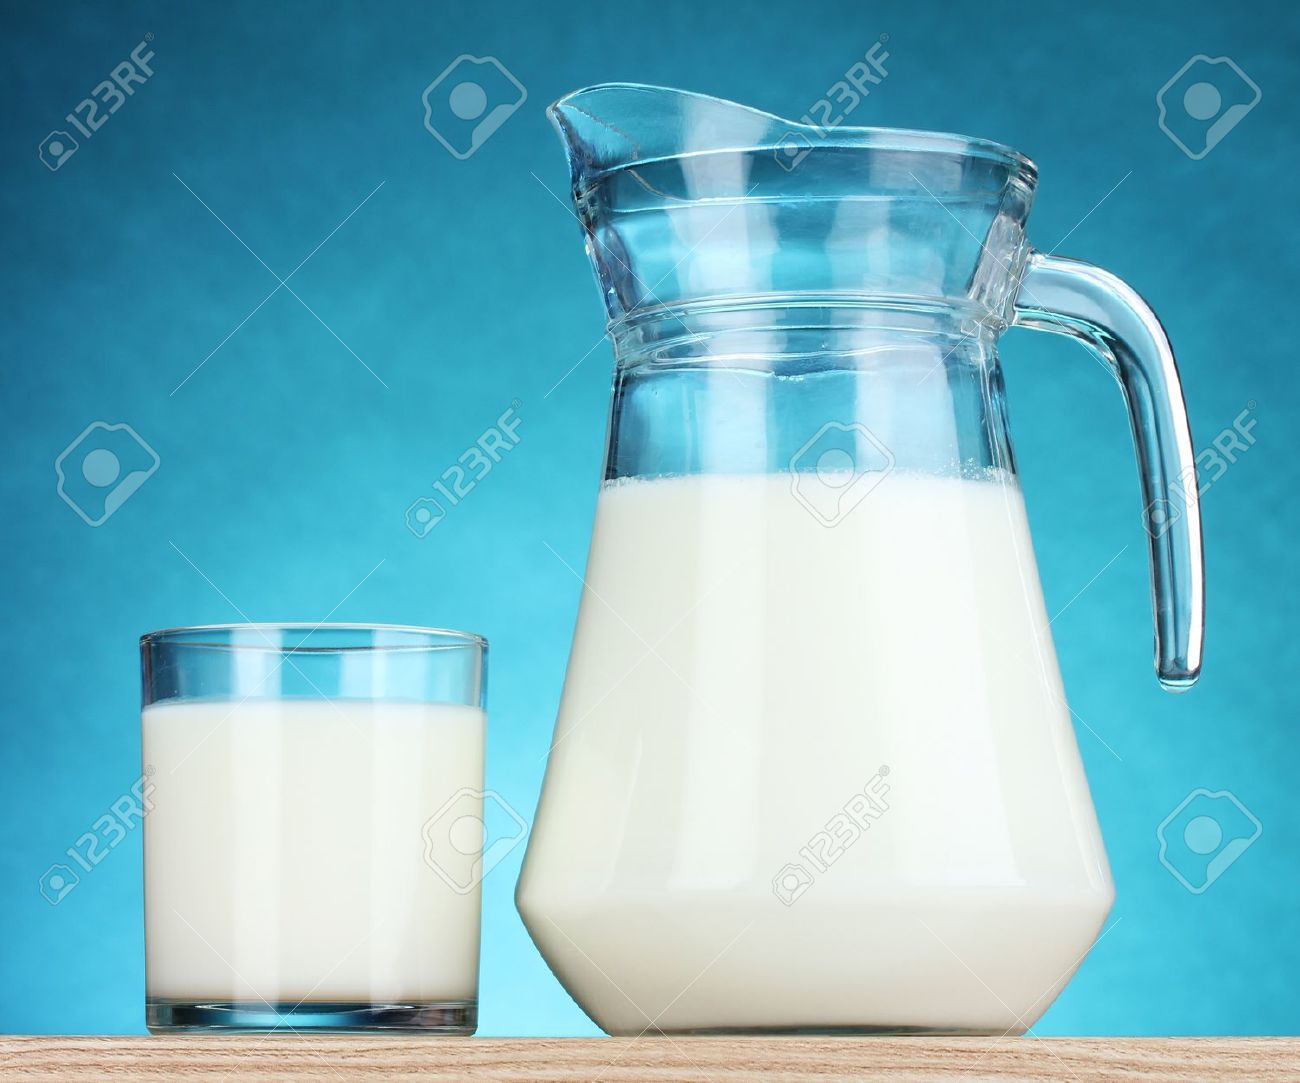 Tasty milk in jug and glass on blue background Stock Photo - 10518967